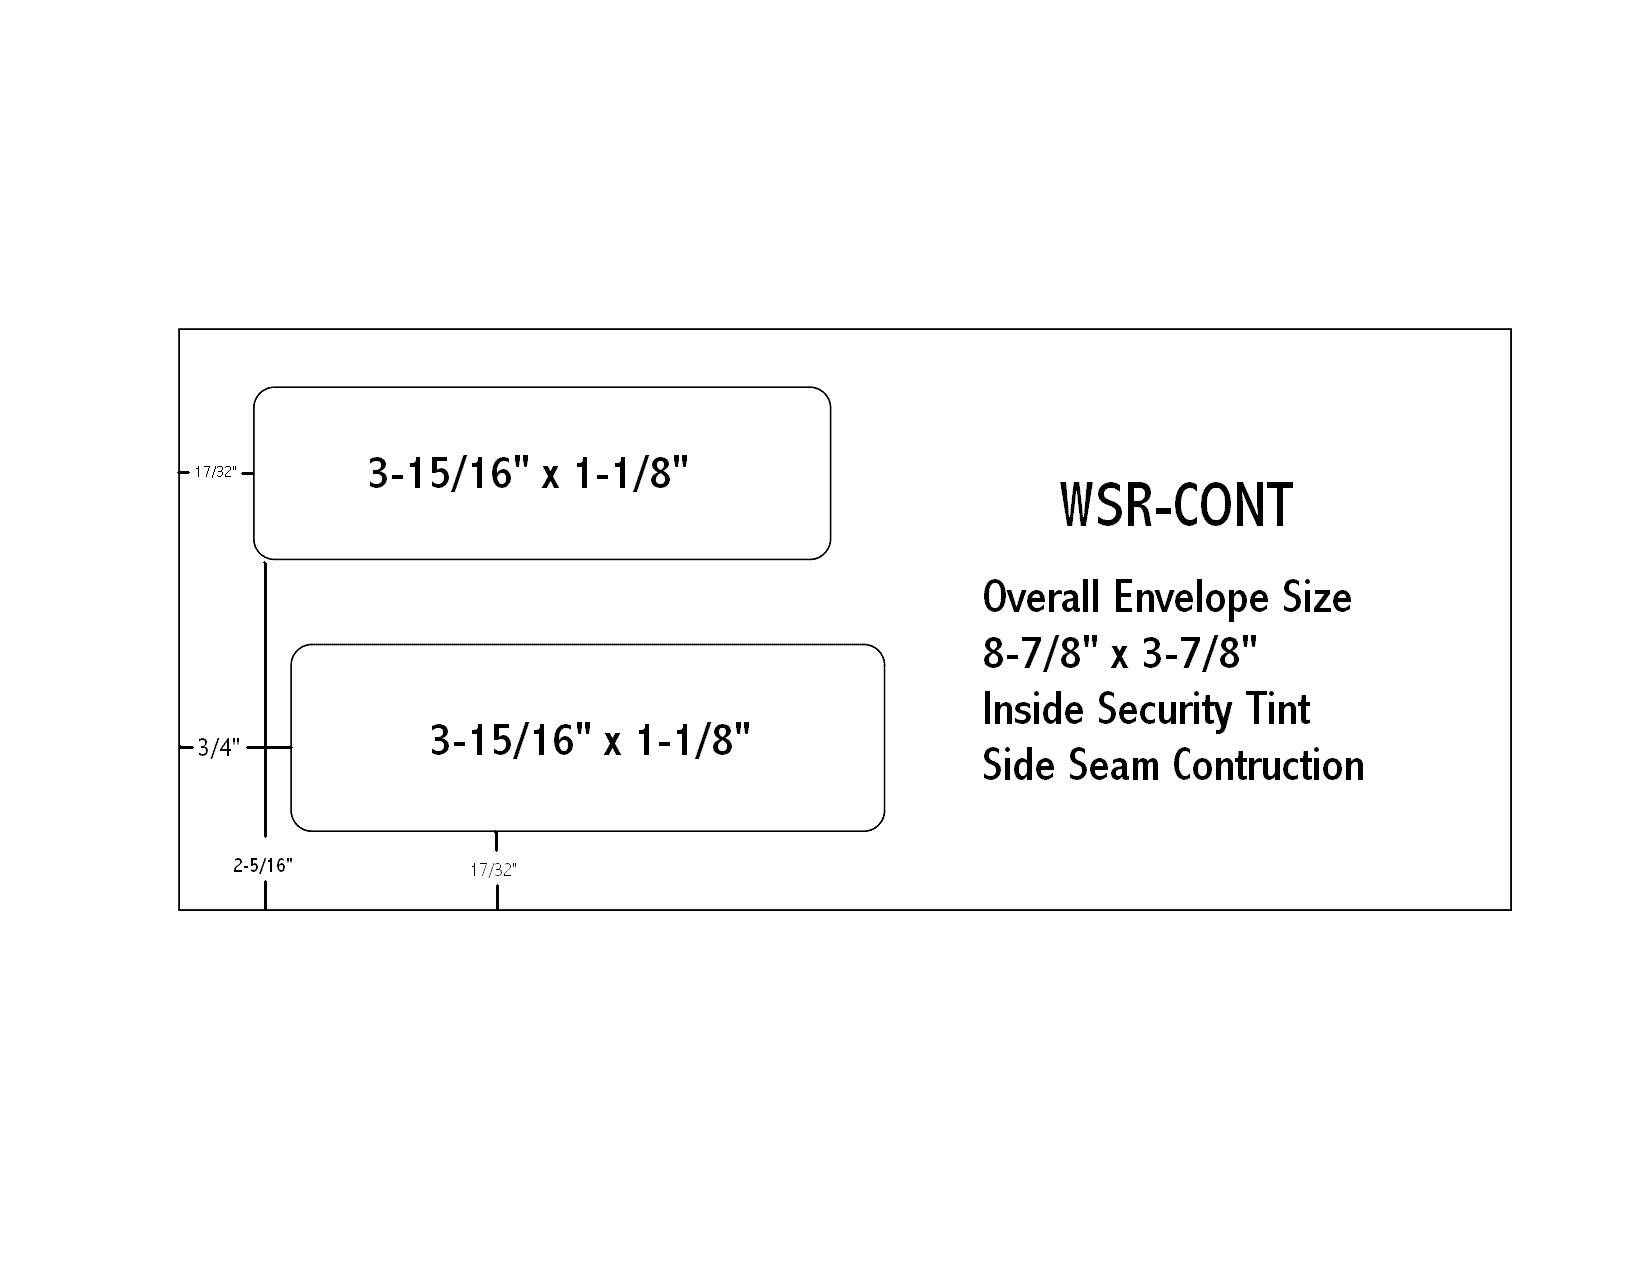 Envelope Templates Commercial Window Envelope Template | WSEL